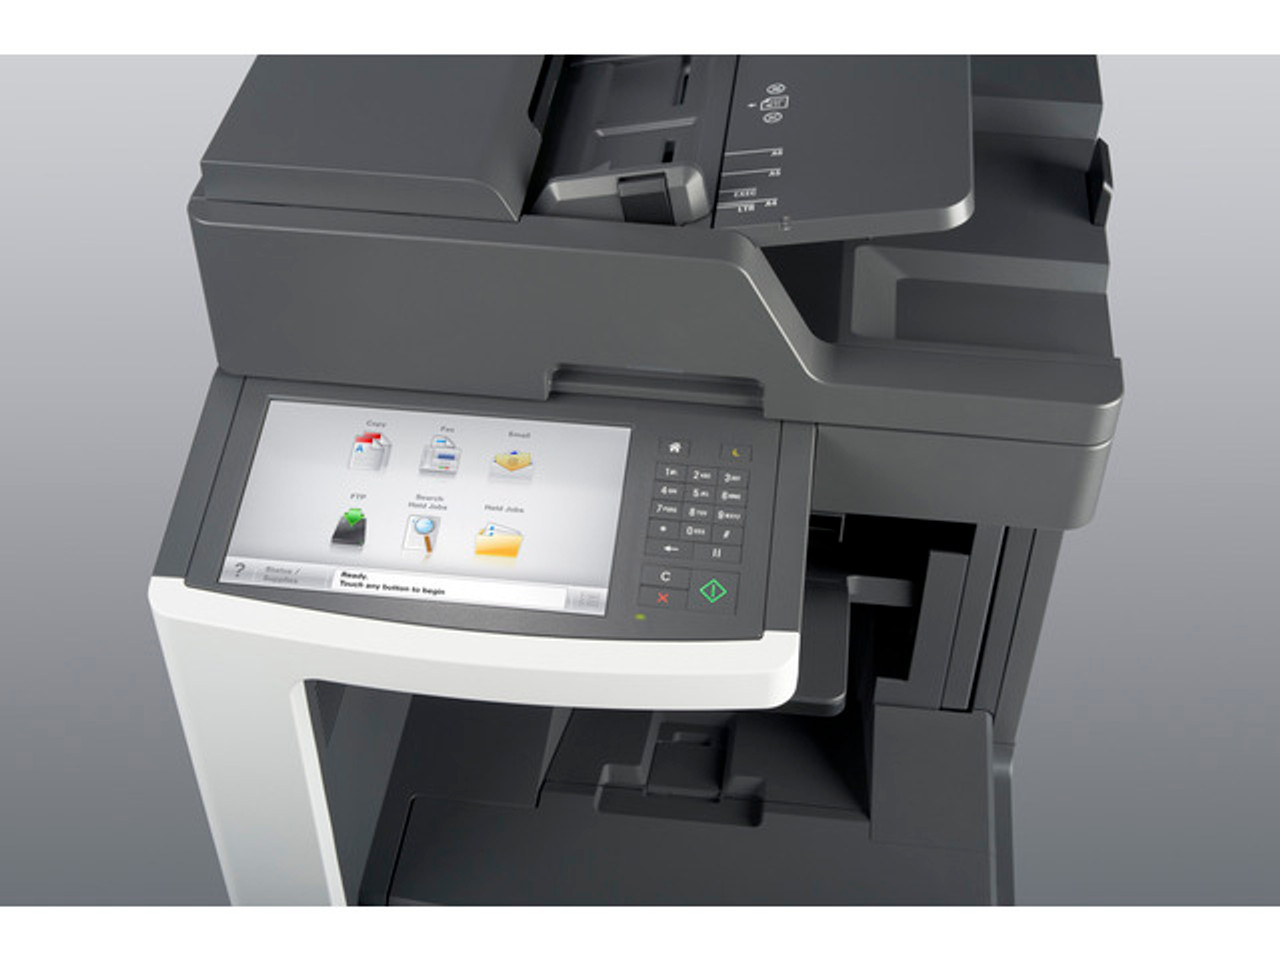 Lexmark MX810 MFP XPS v4 Drivers Windows 7